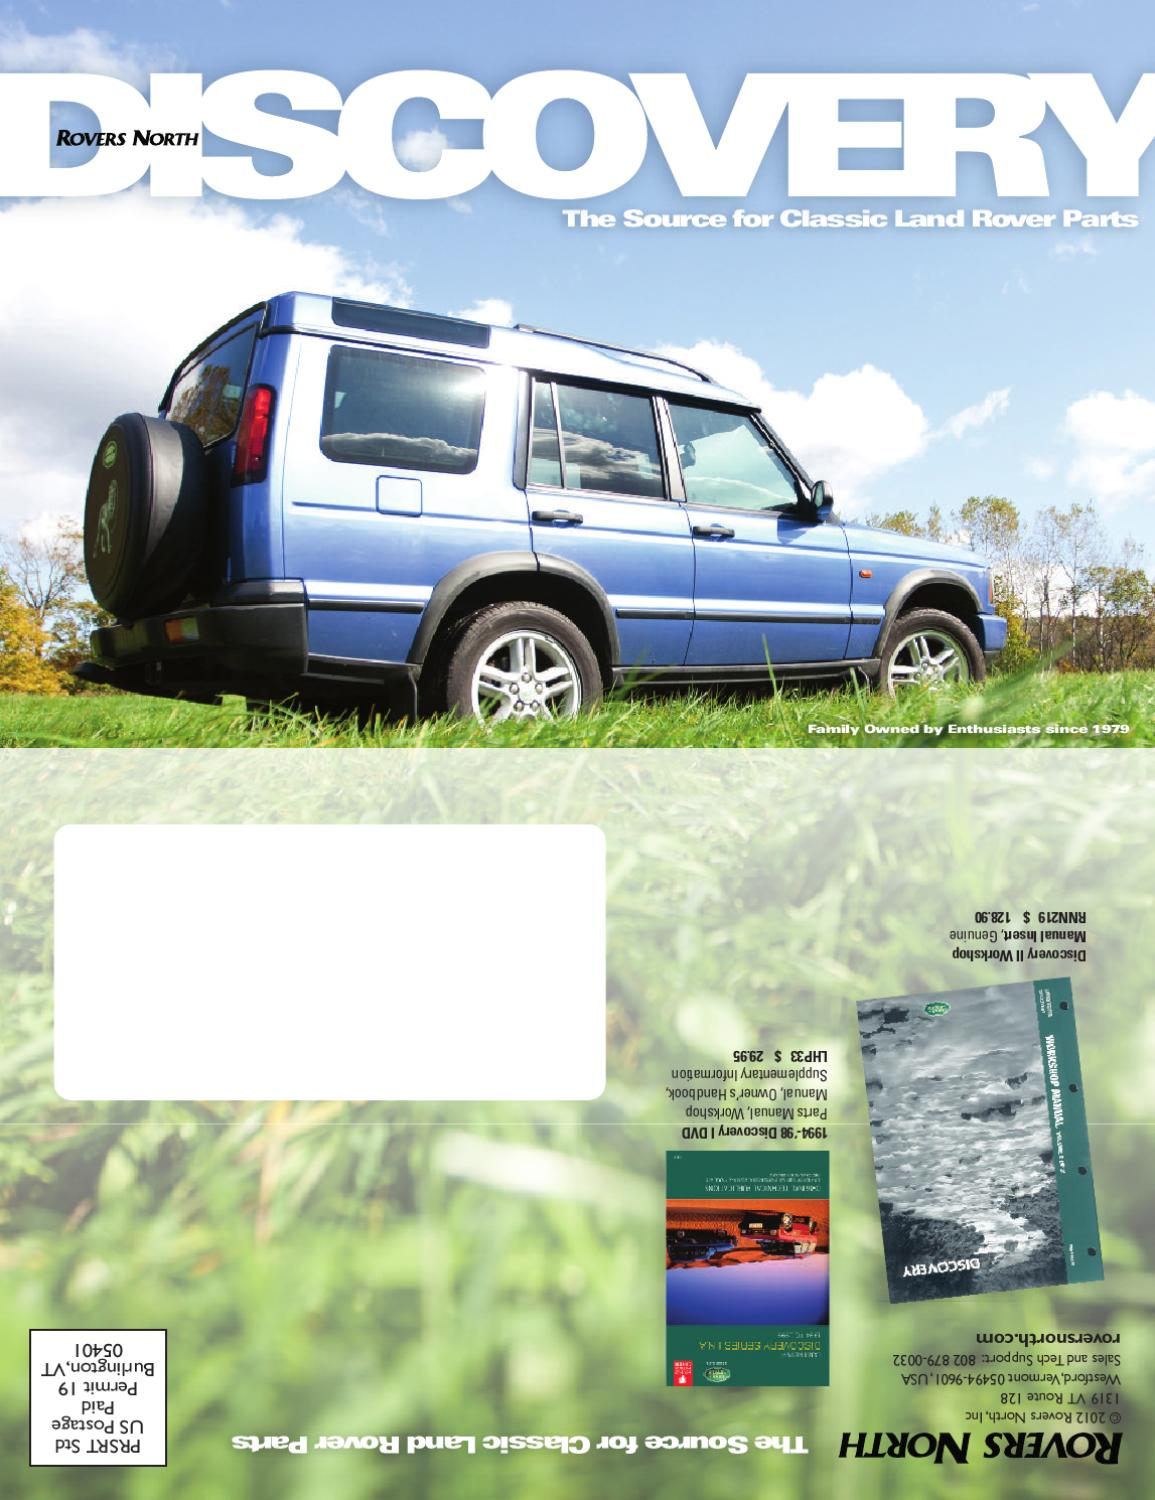 98 Land Rover Discovery Parts Car 2004 Diagram Wiring Schematic Accessories By Rovers North Issuu